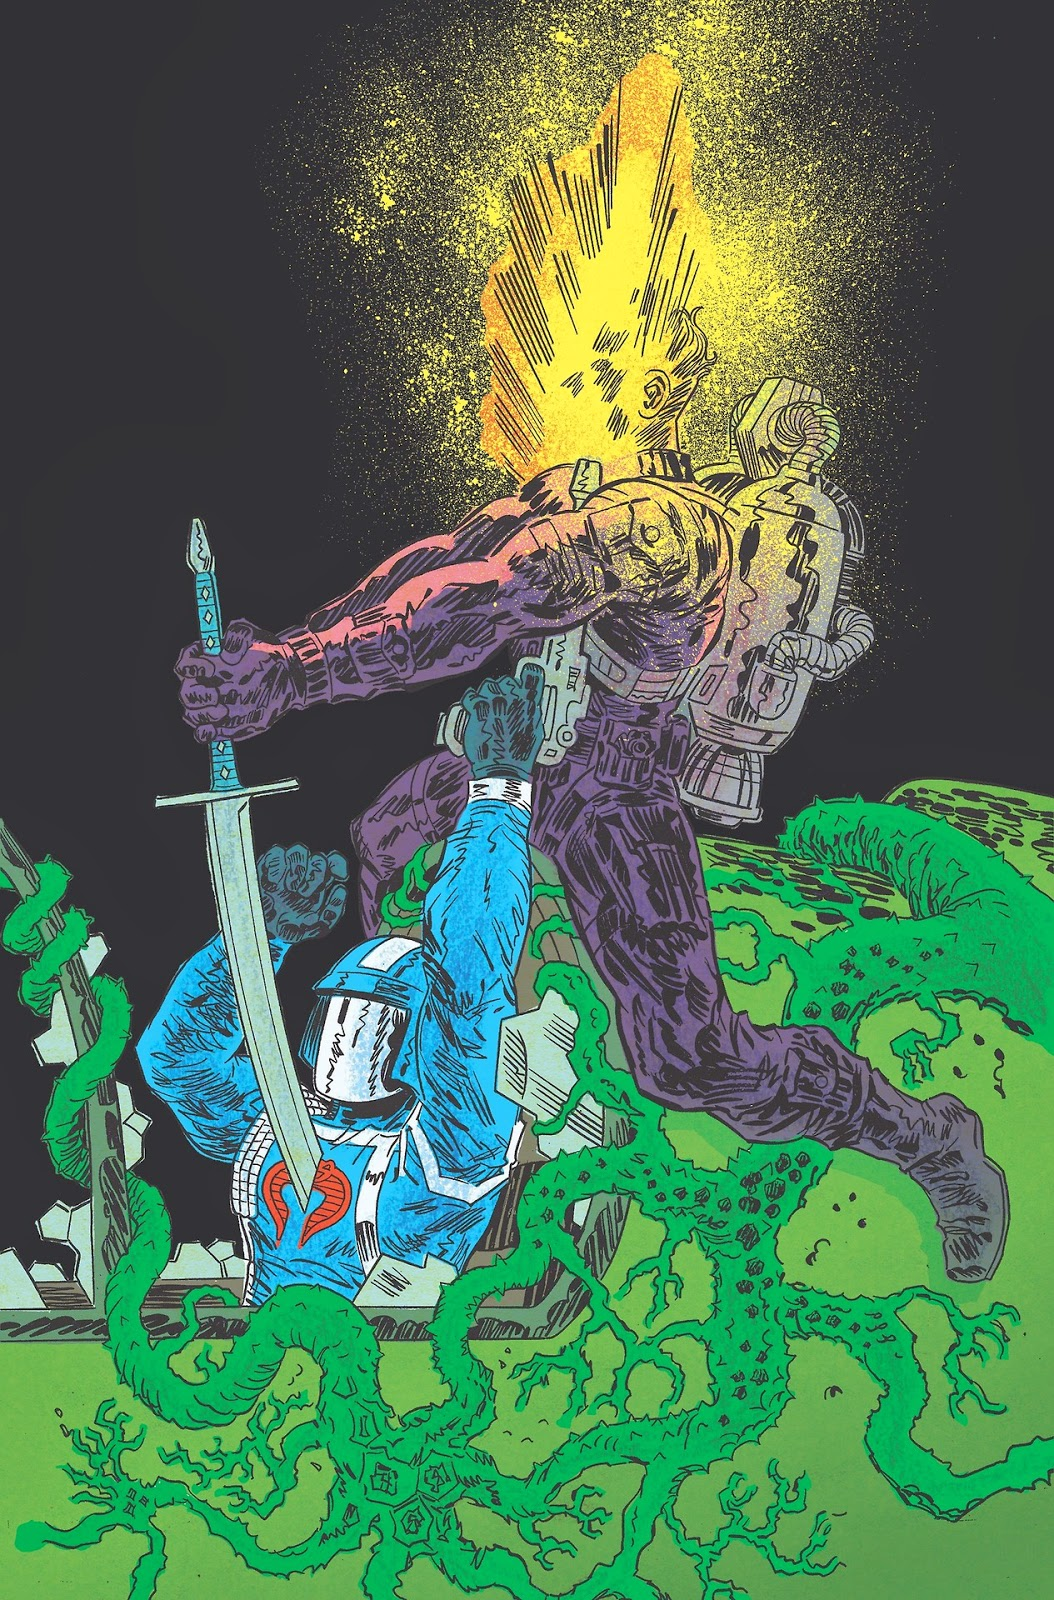 From Transformers vs. G.I. Joe #0. Art by Tom Scioli.